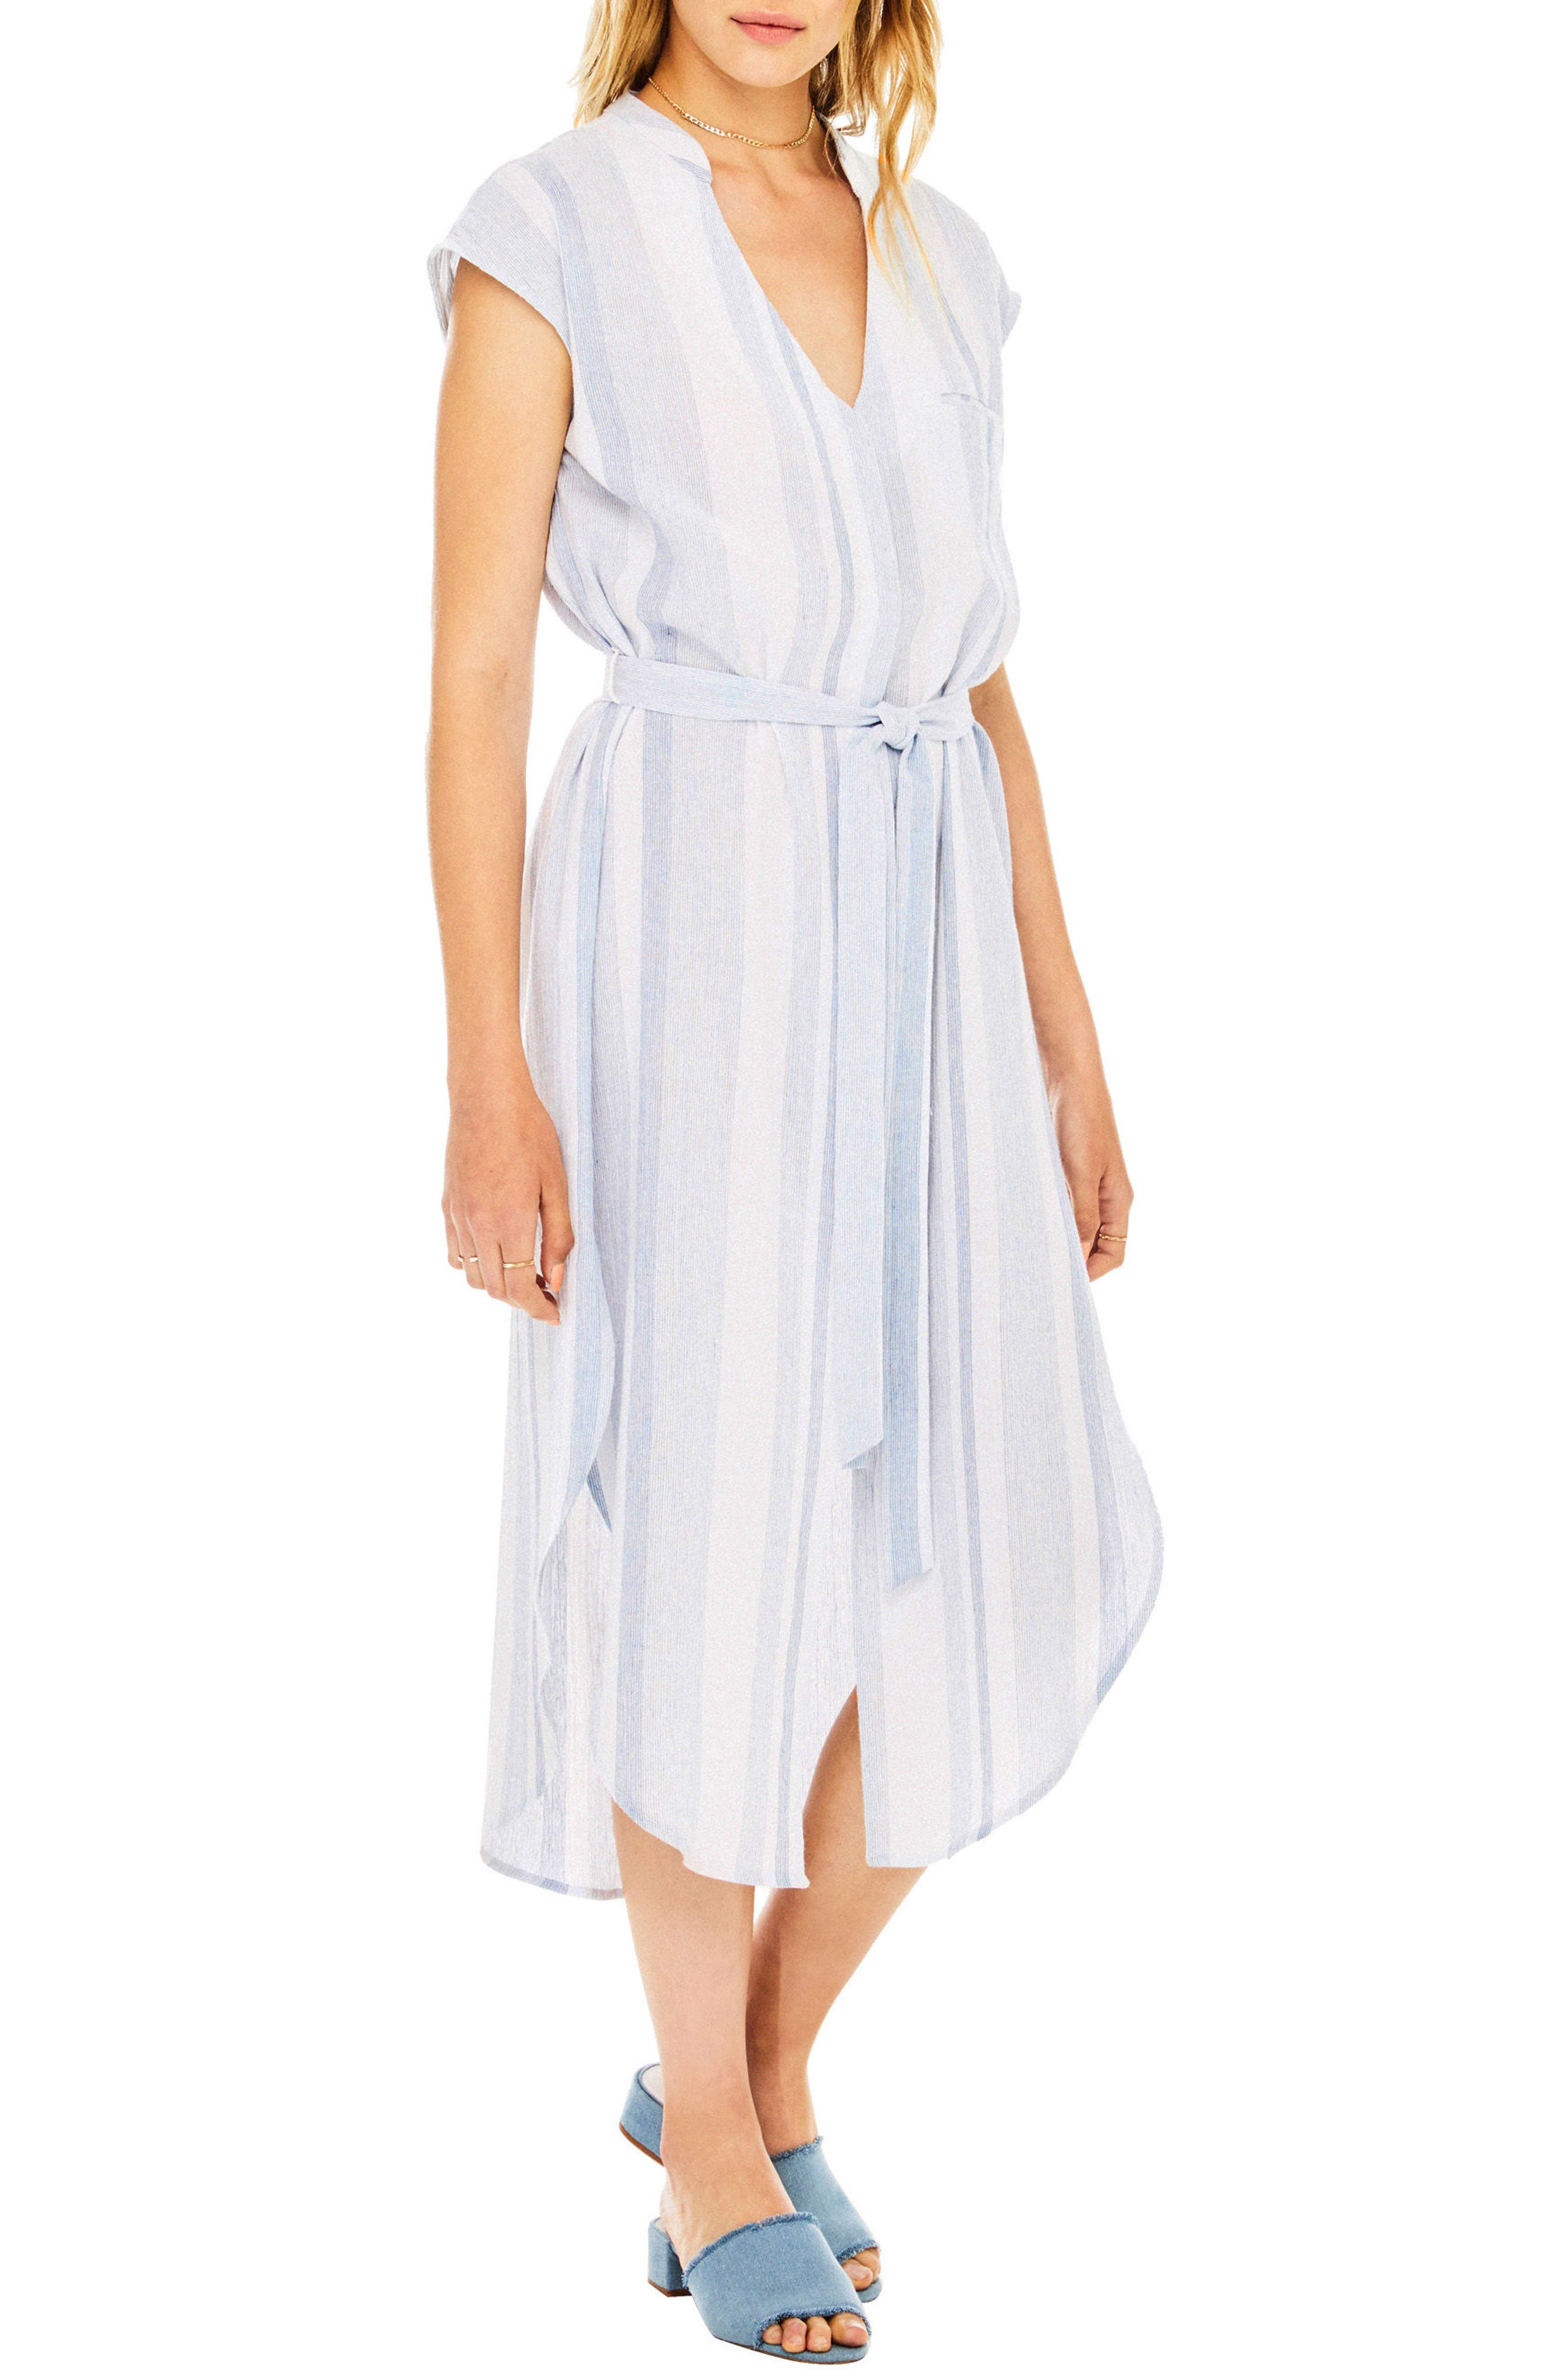 Sawyer Shirtdress,                             Alternate thumbnail 3, color,                             Sky Blue Stripe